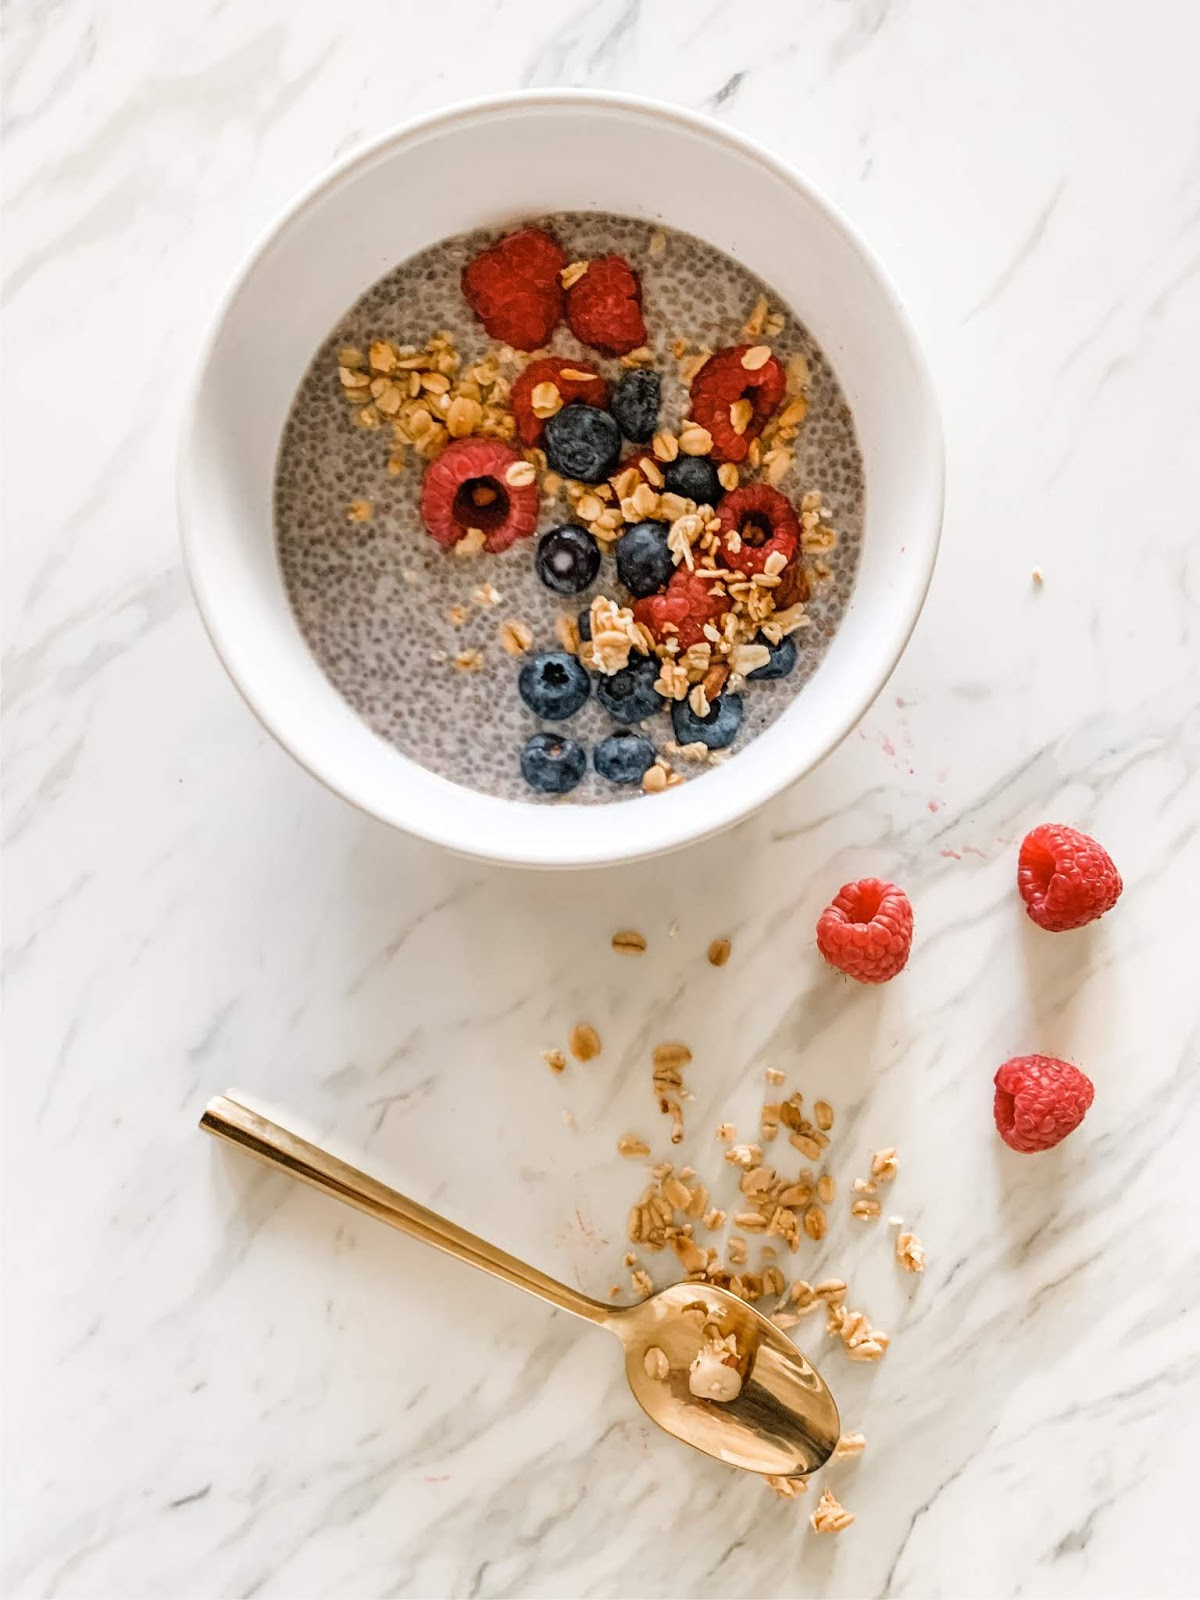 Chia seed pudding with berries and granola